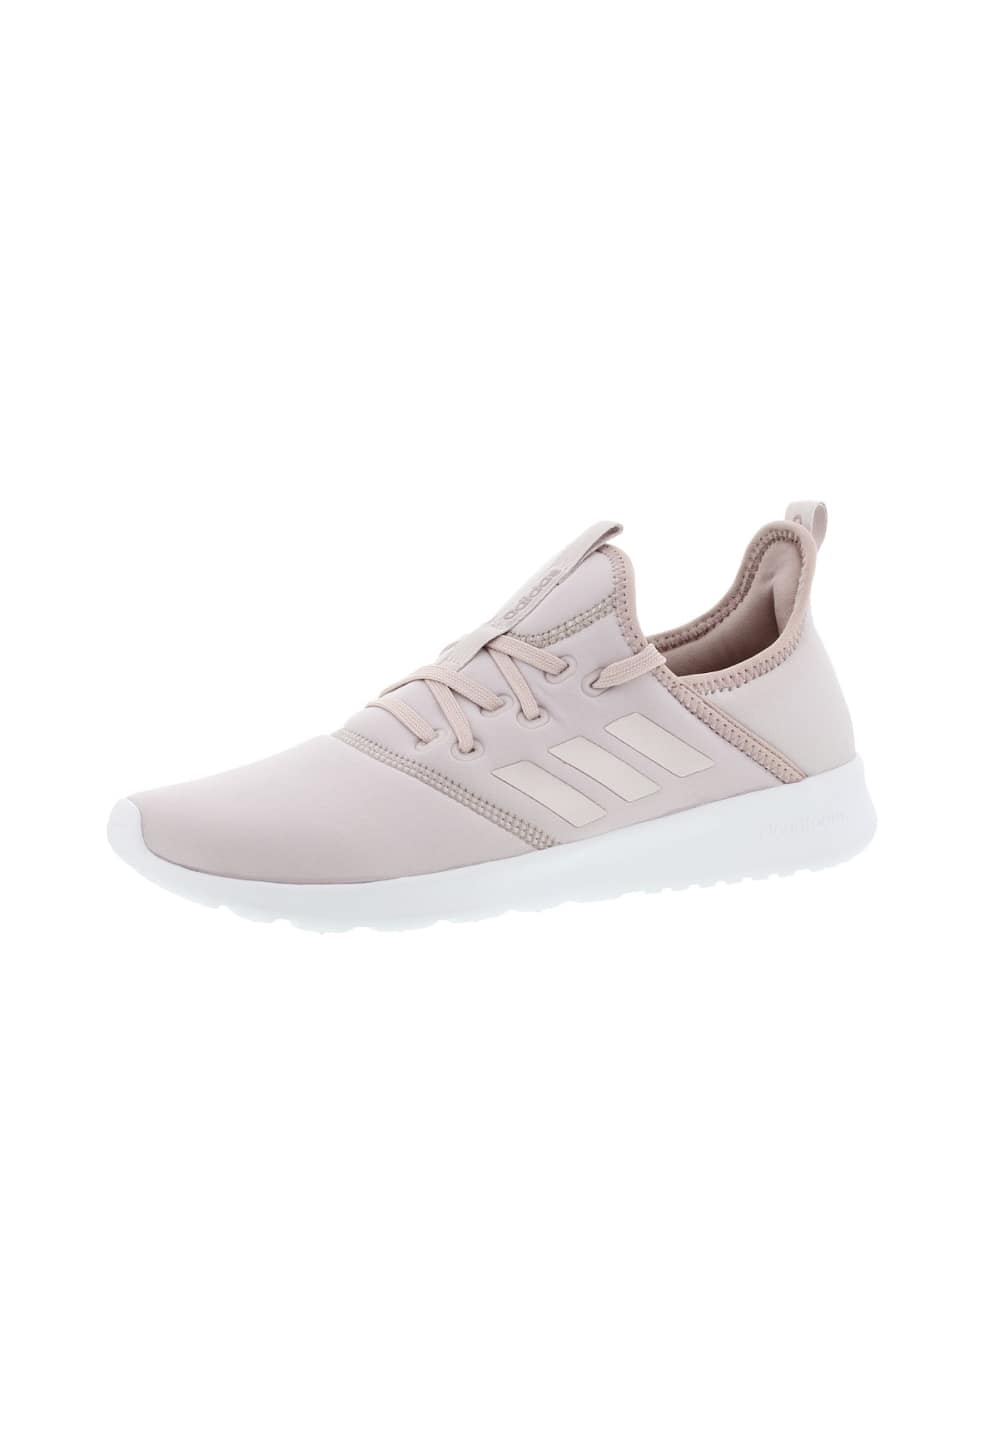 best sneakers ab876 c7fdd adidas neo Cloudfoam Pure - Running shoes for Women - Pink